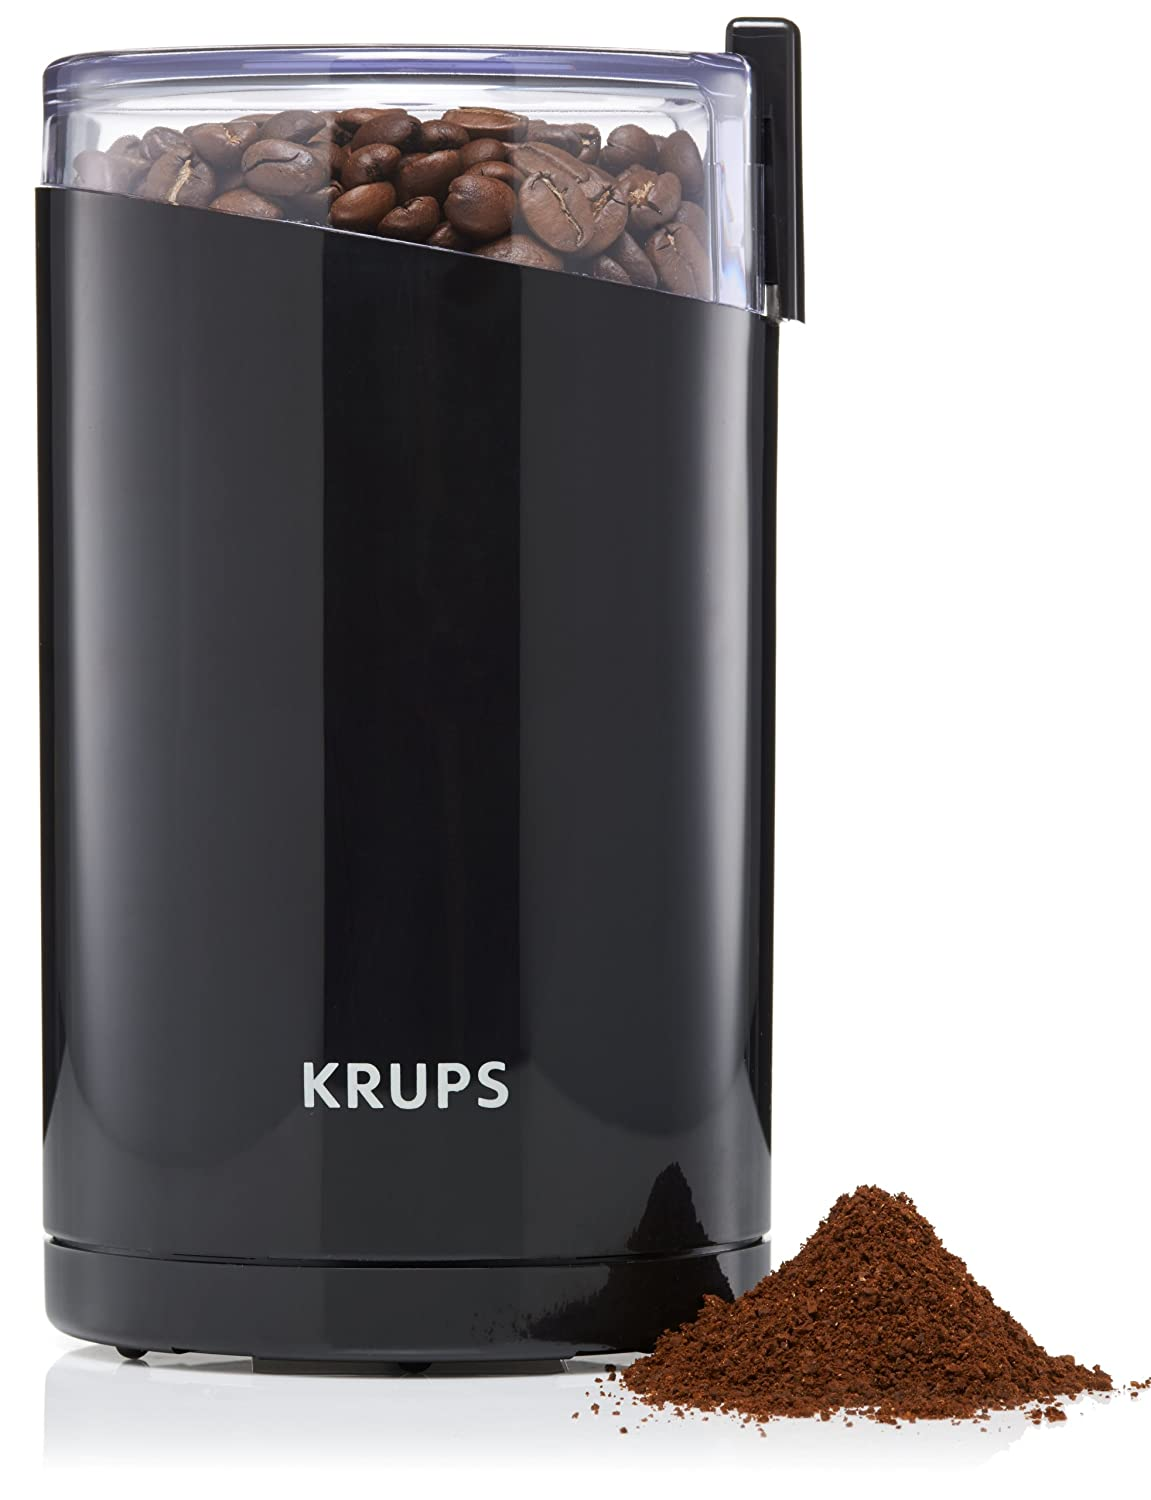 Krups 20342 Electric Coffee and Spice grinder with stainless steel blades, Black at Sears.com